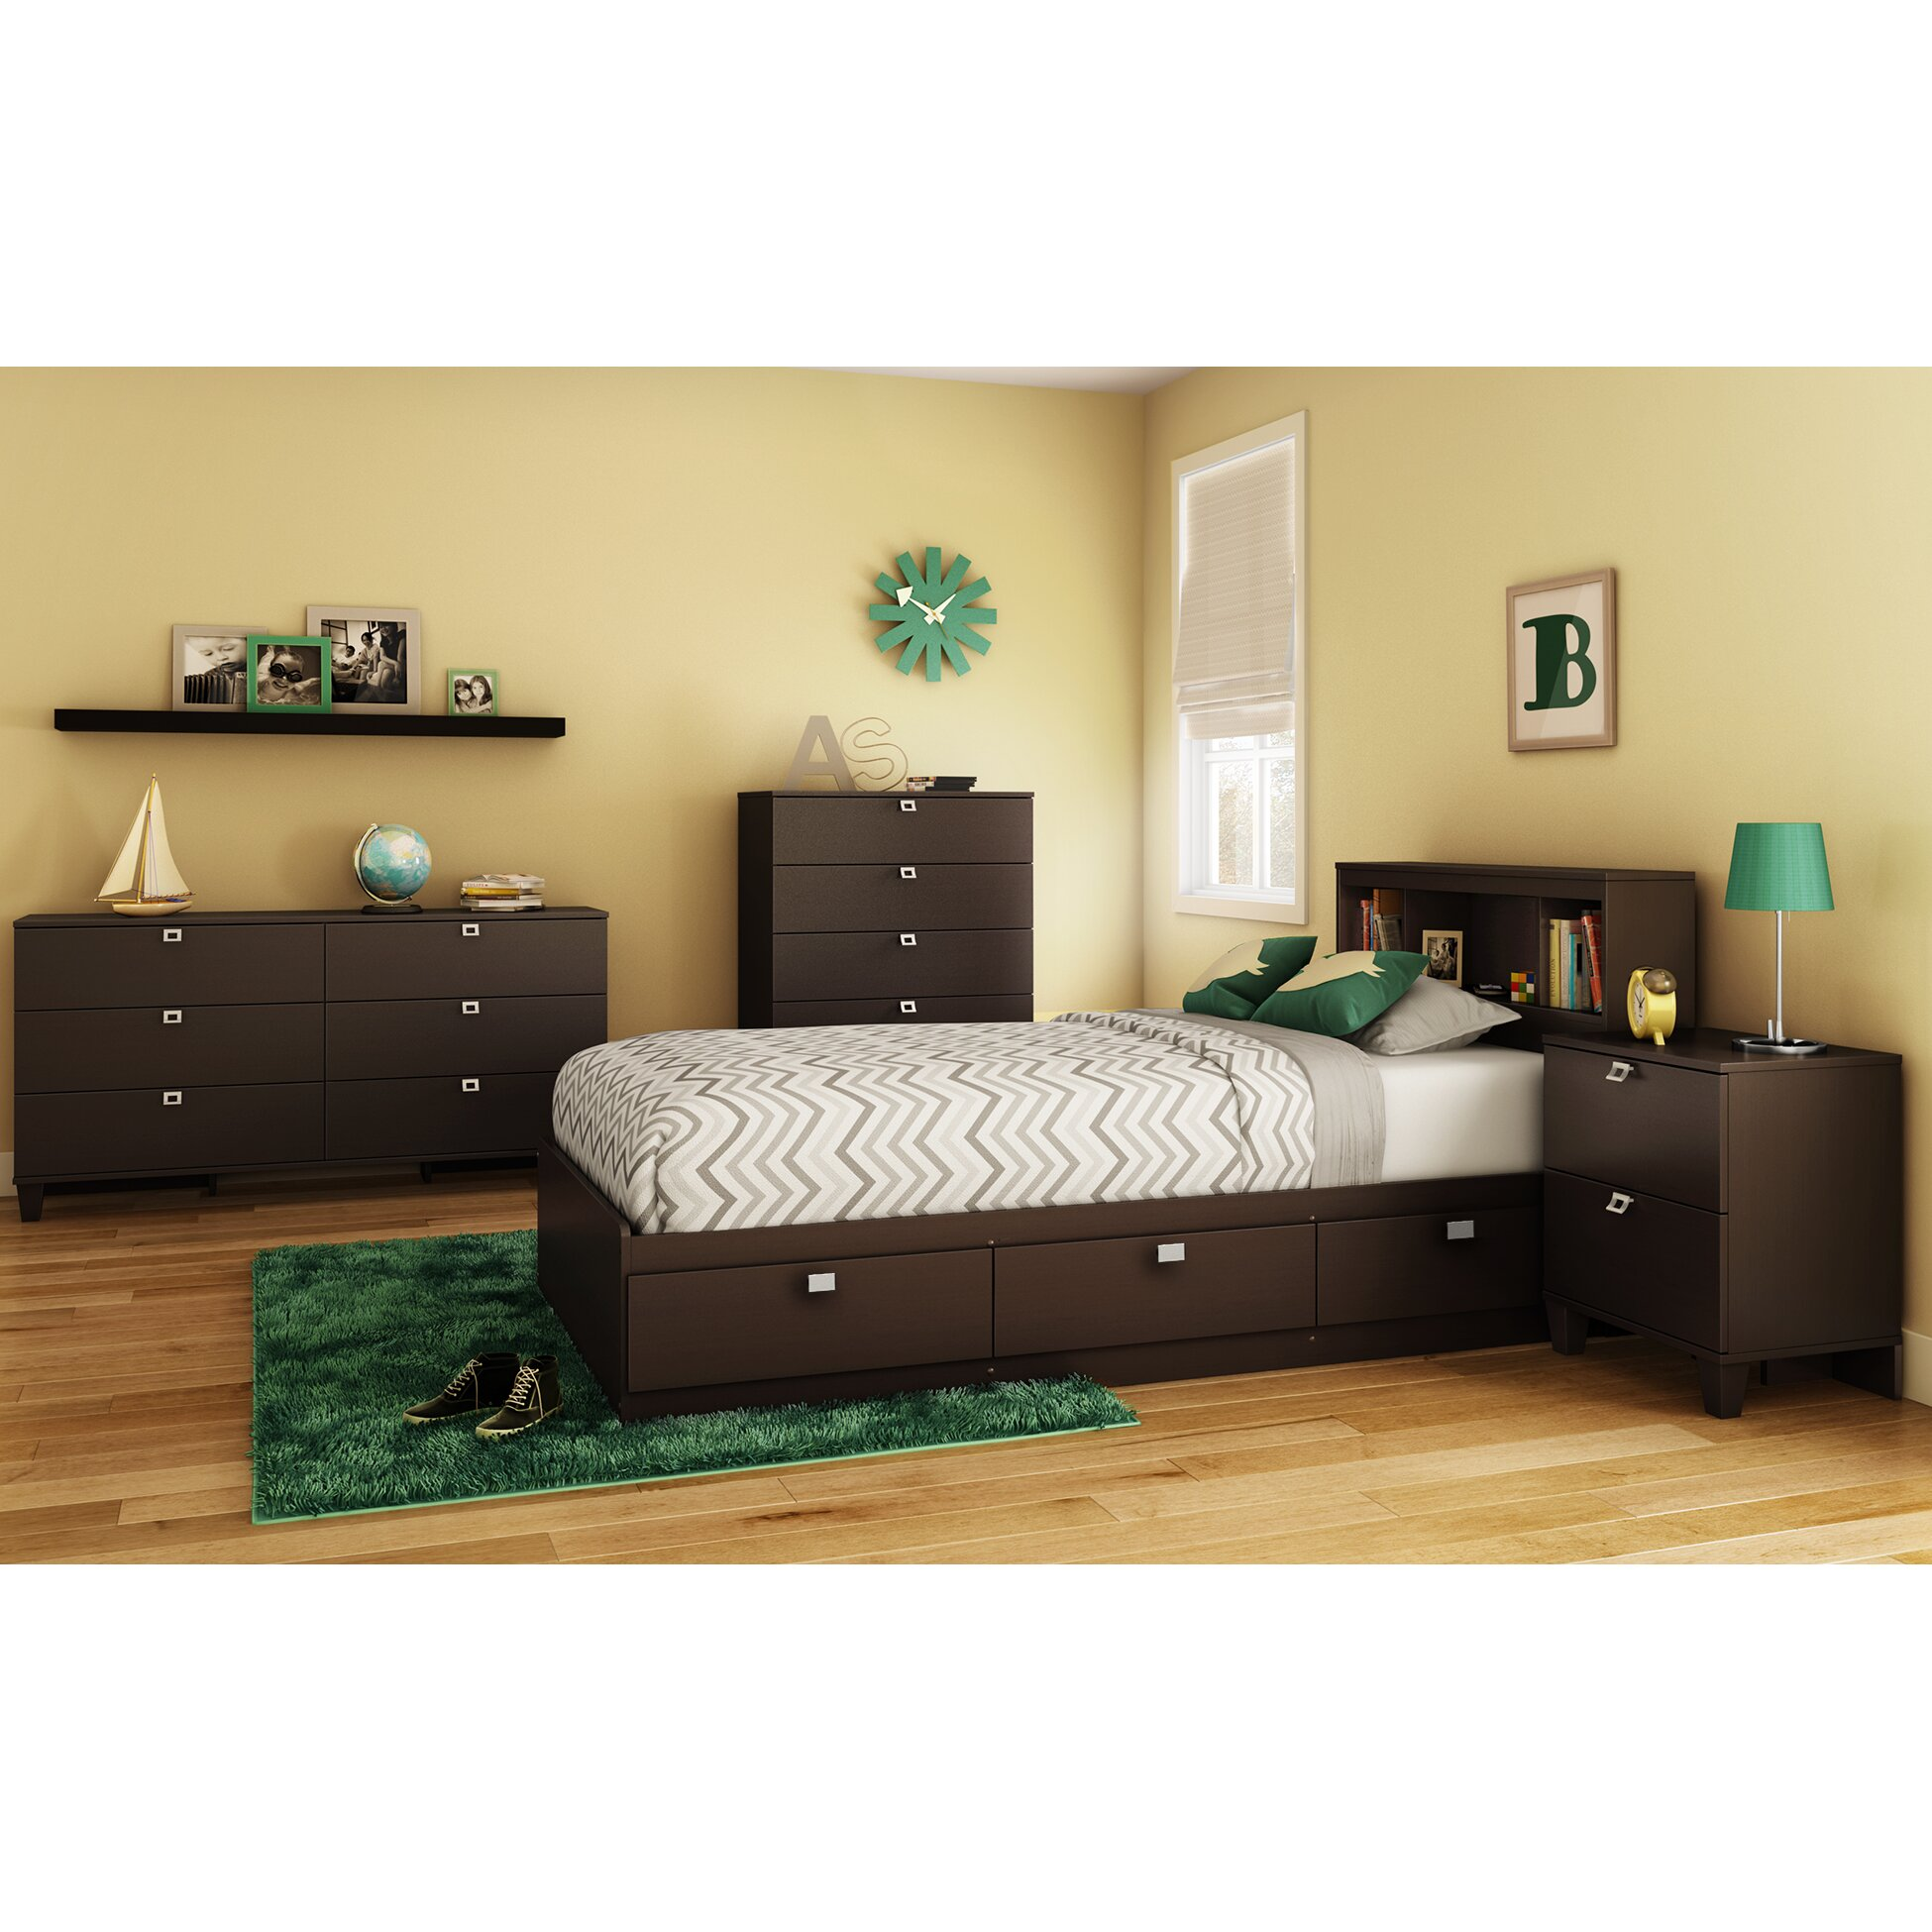 Kids Kids Bedroom Furniture Kids Bedroom Sets South Shore SKU TH3435